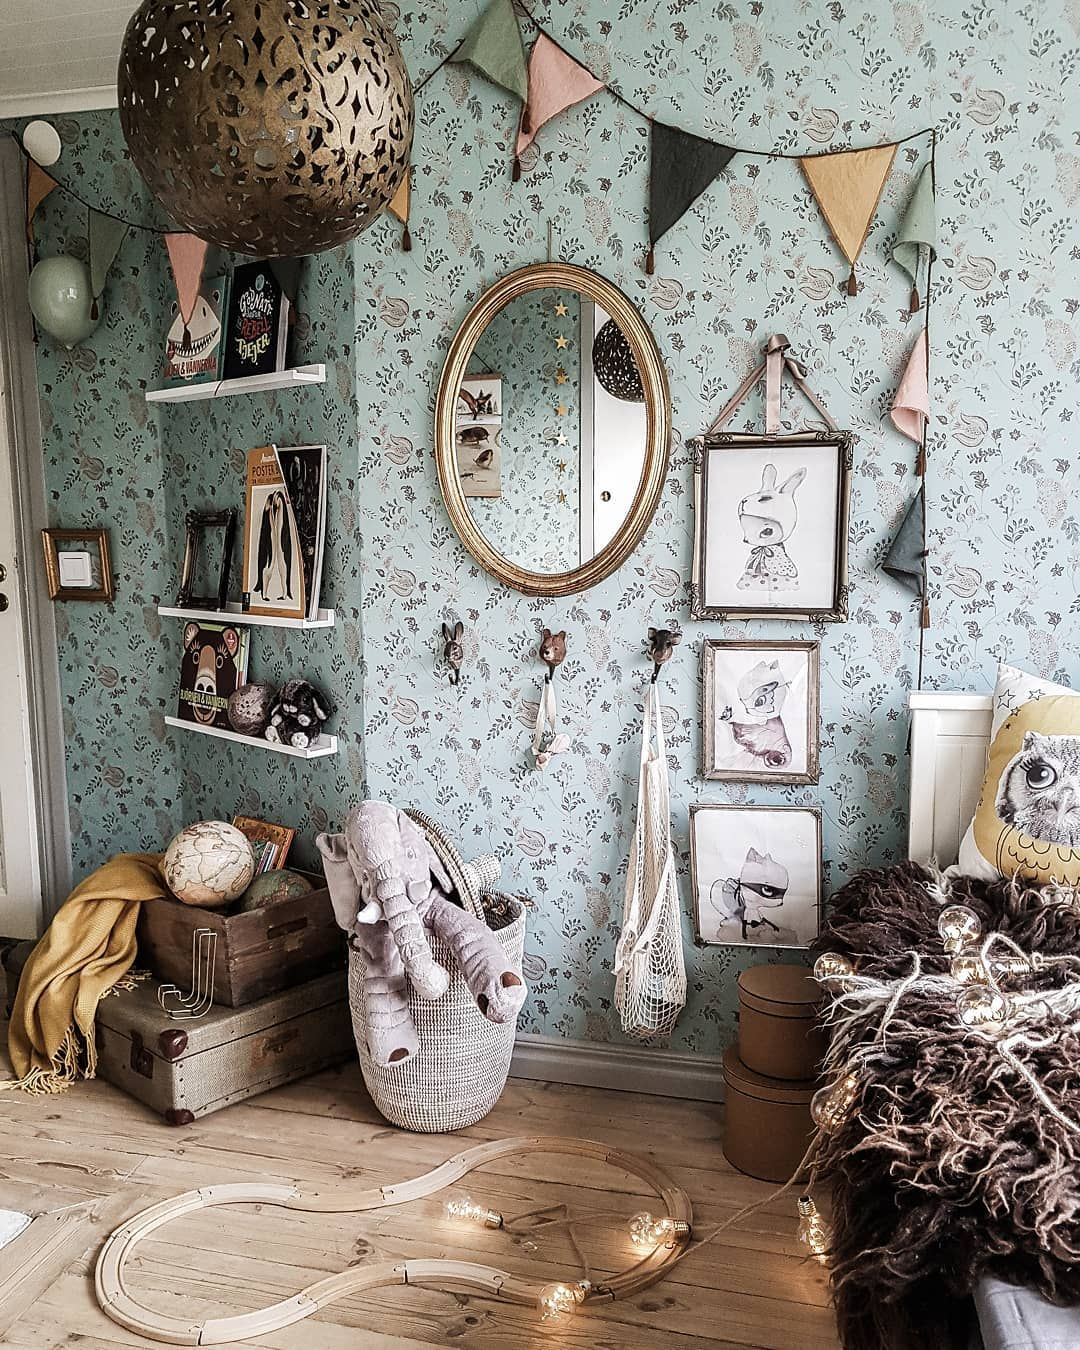 Not Your Usual Top 10 Kids' Room Trends for 2019 |